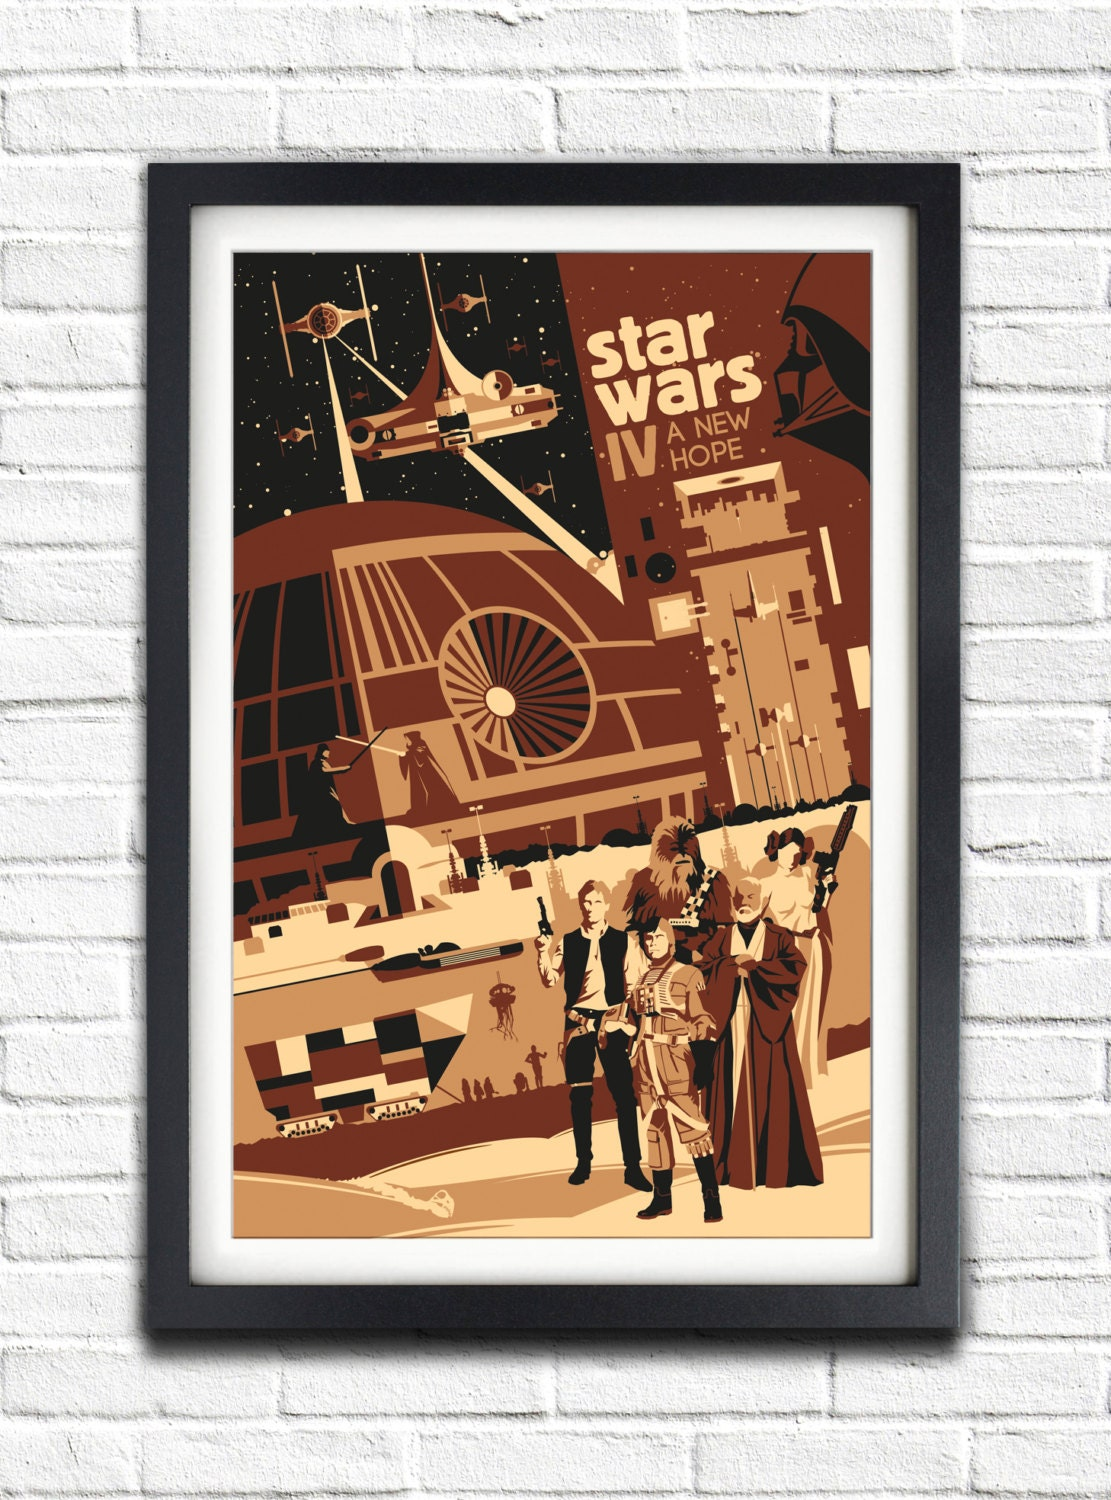 Star Wars IV A New Hope 19x13 Poster by bensmind on Etsy